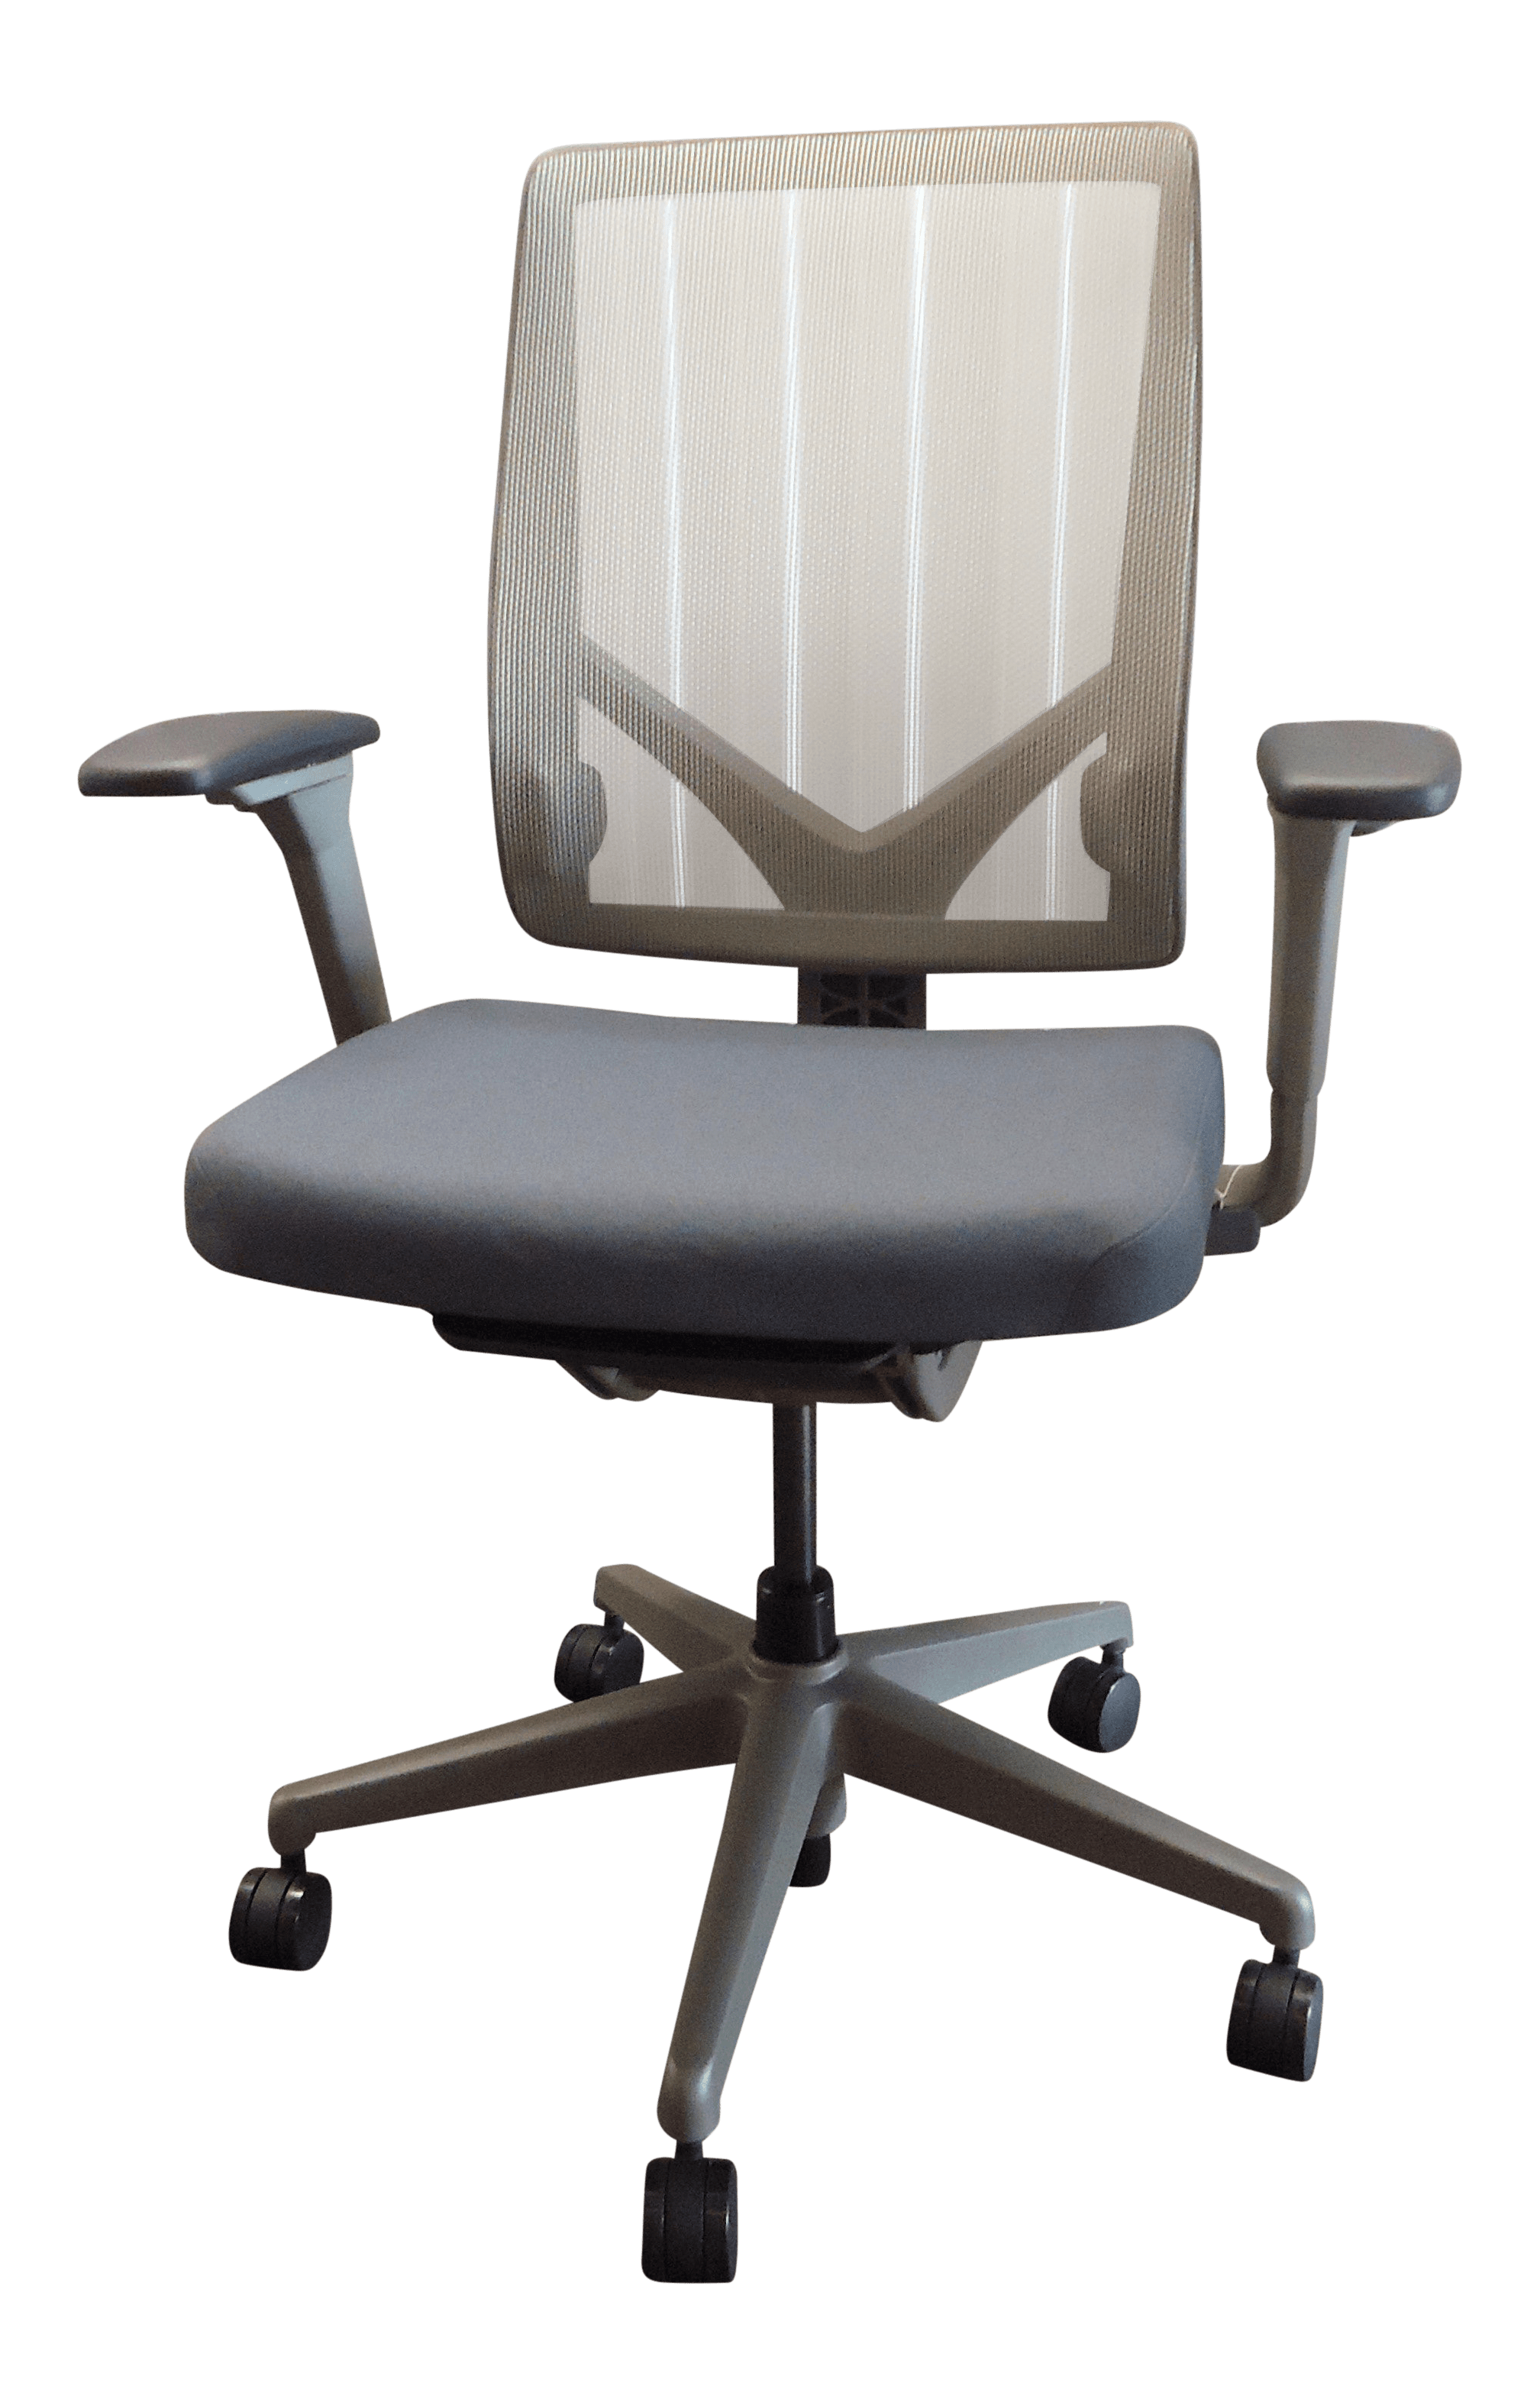 allsteel relate chair reviews baby chairs walmart marcus koepke ergonomic high back mesh work for sale